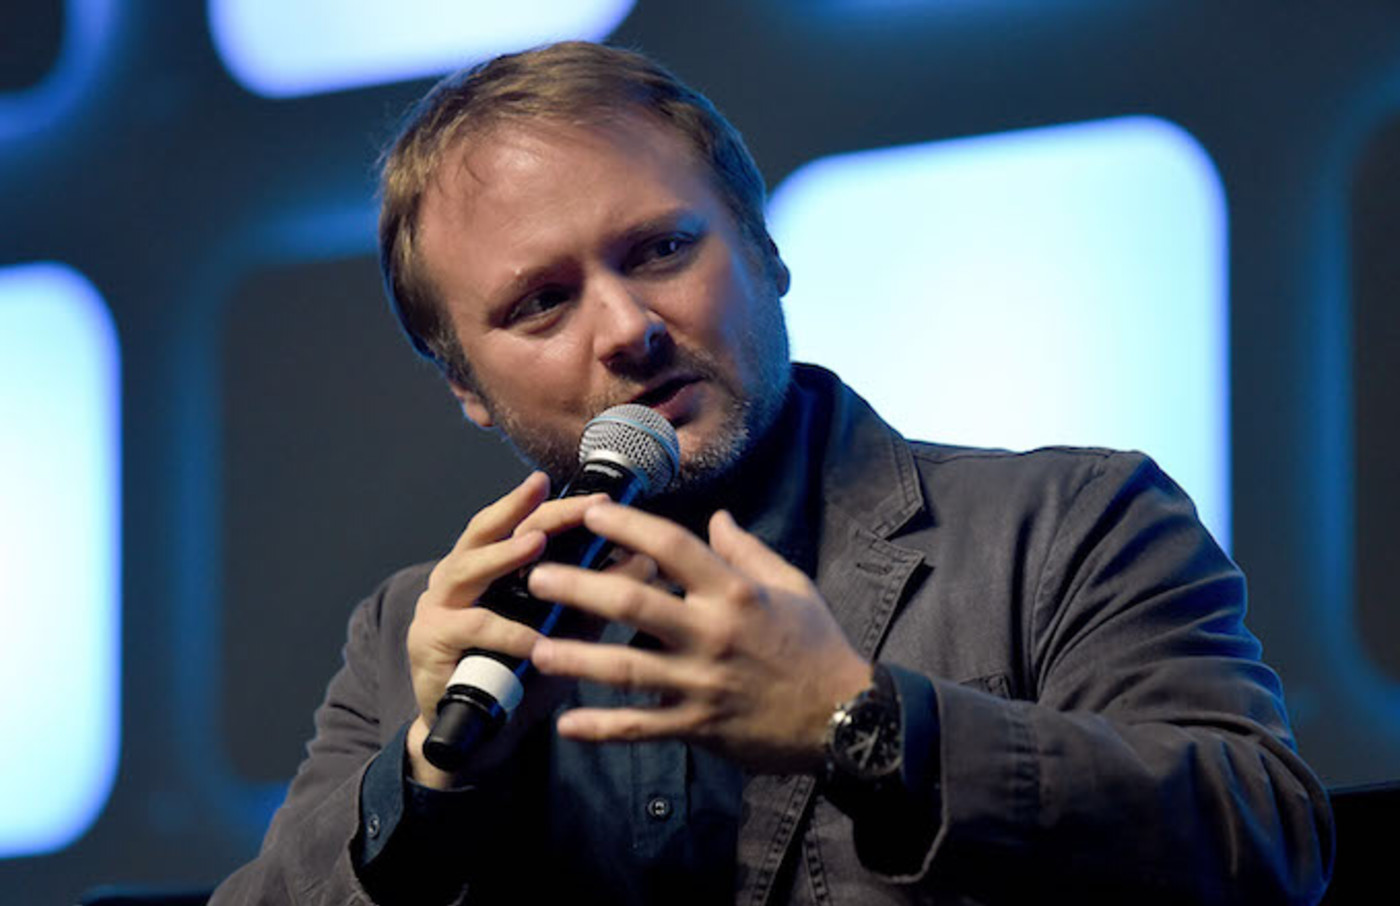 Rian Johnson discusses 'Star Wars'-related stuff.